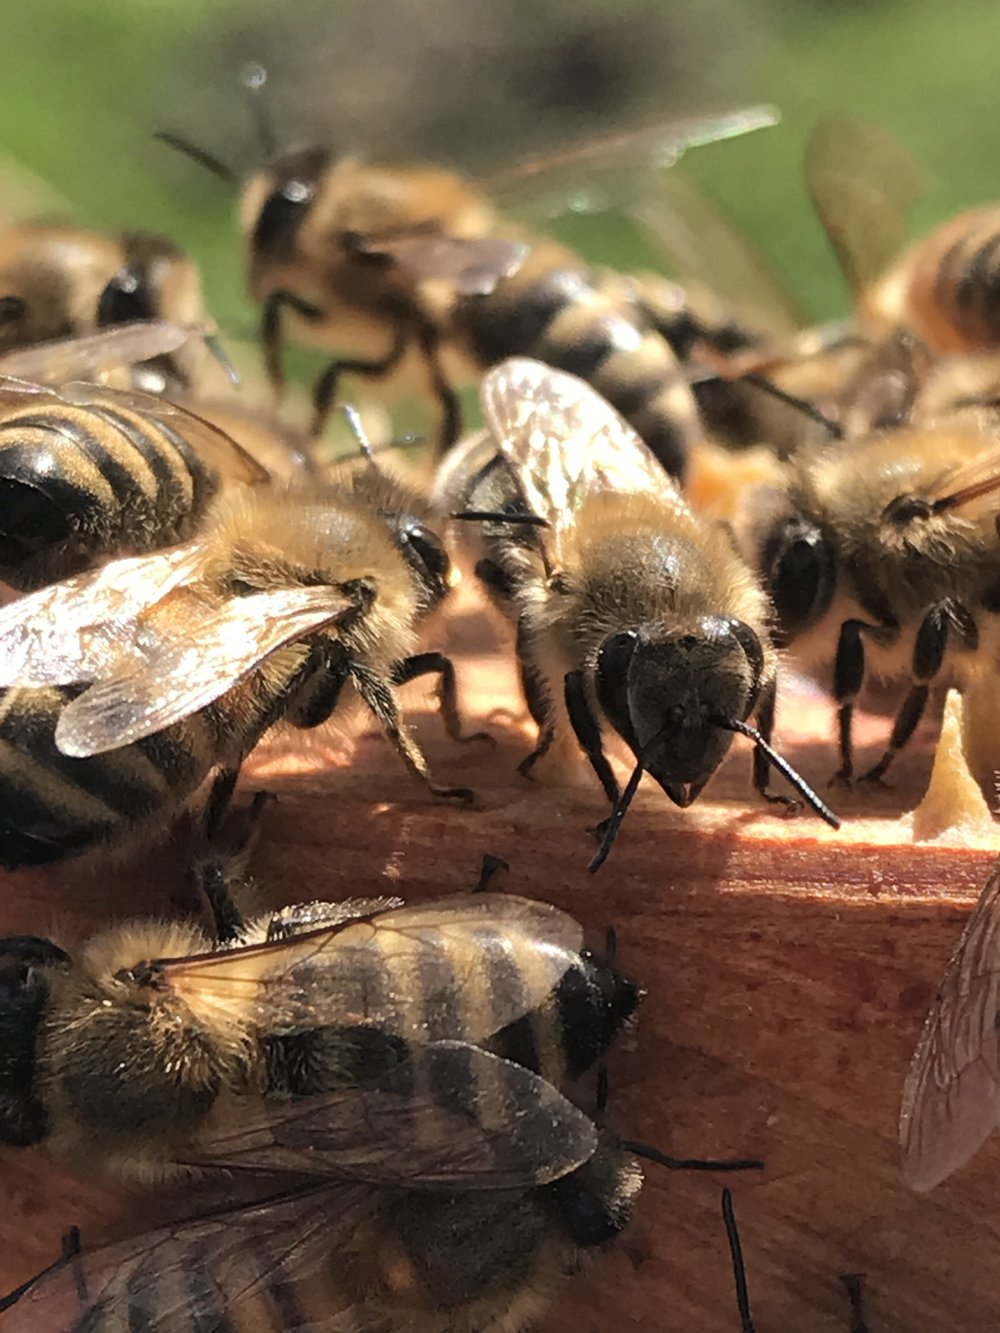 Welcome toThe Honey Diaries - Our little blog on the ongoing successes and failures of keeping honey bees in our backyardFollow us on social media and subscribe to the mailing list to get updates on blog postings